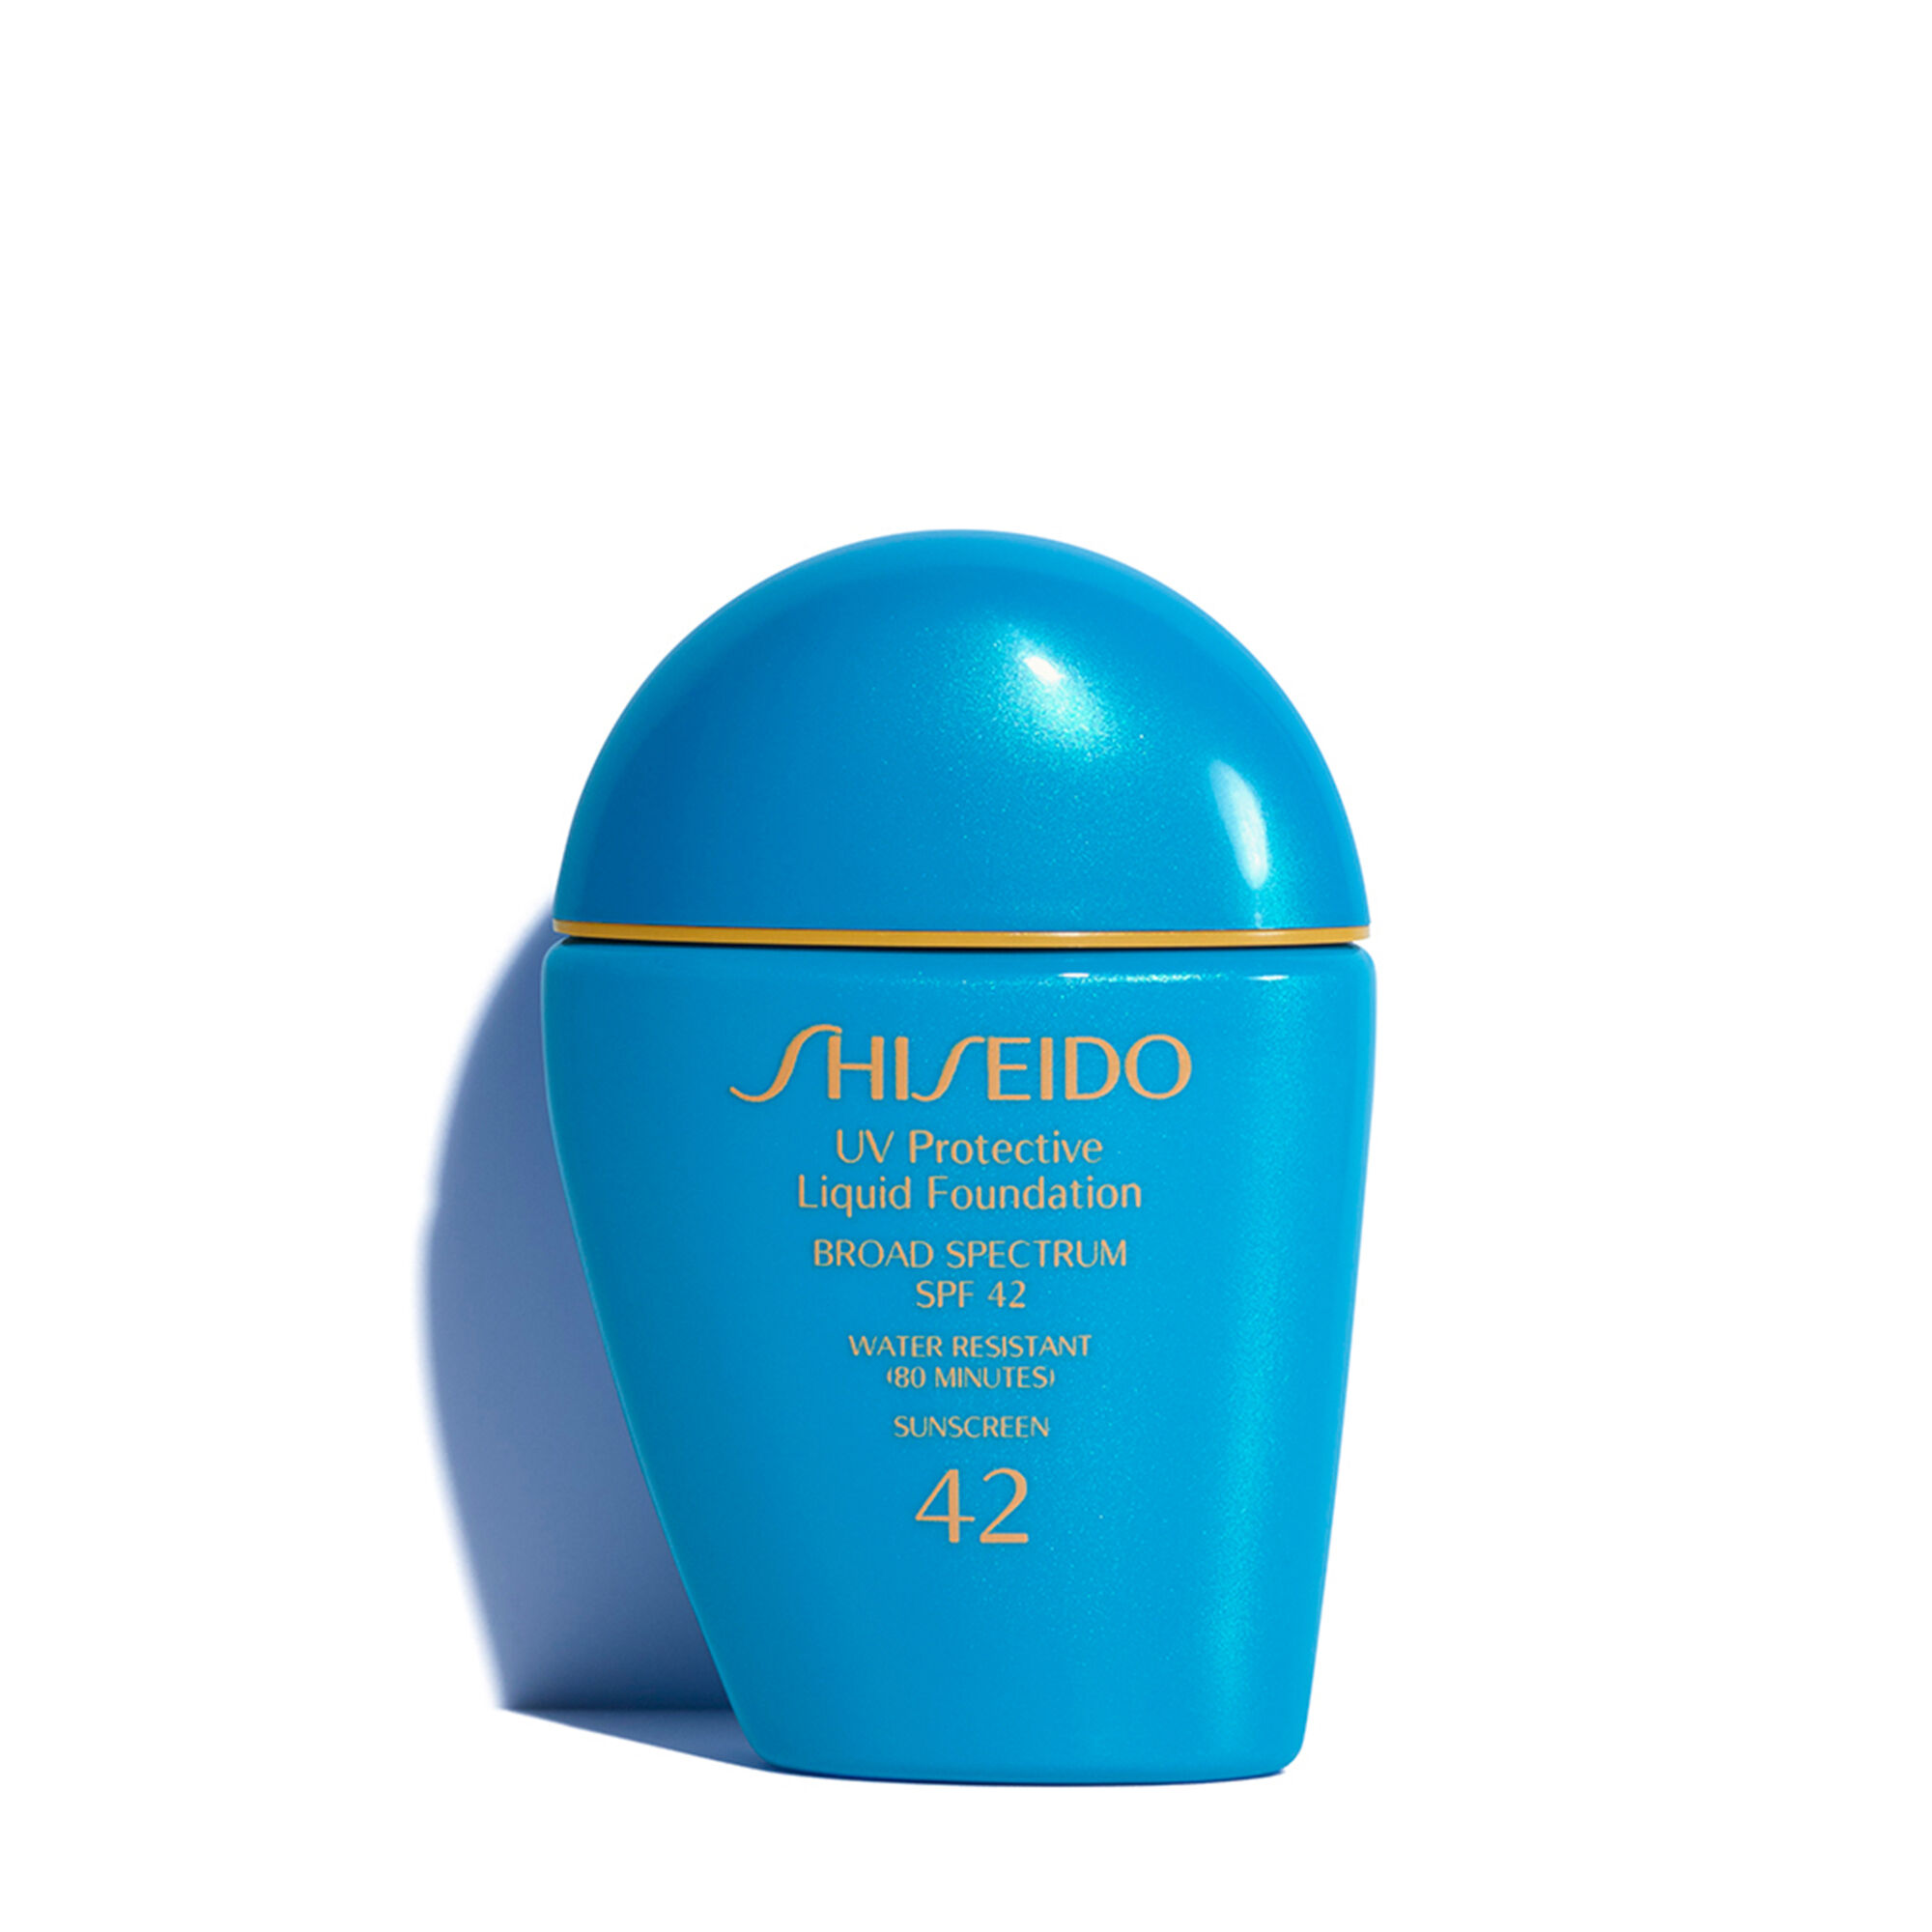 Uv Protective Liquid Foundation Shiseido